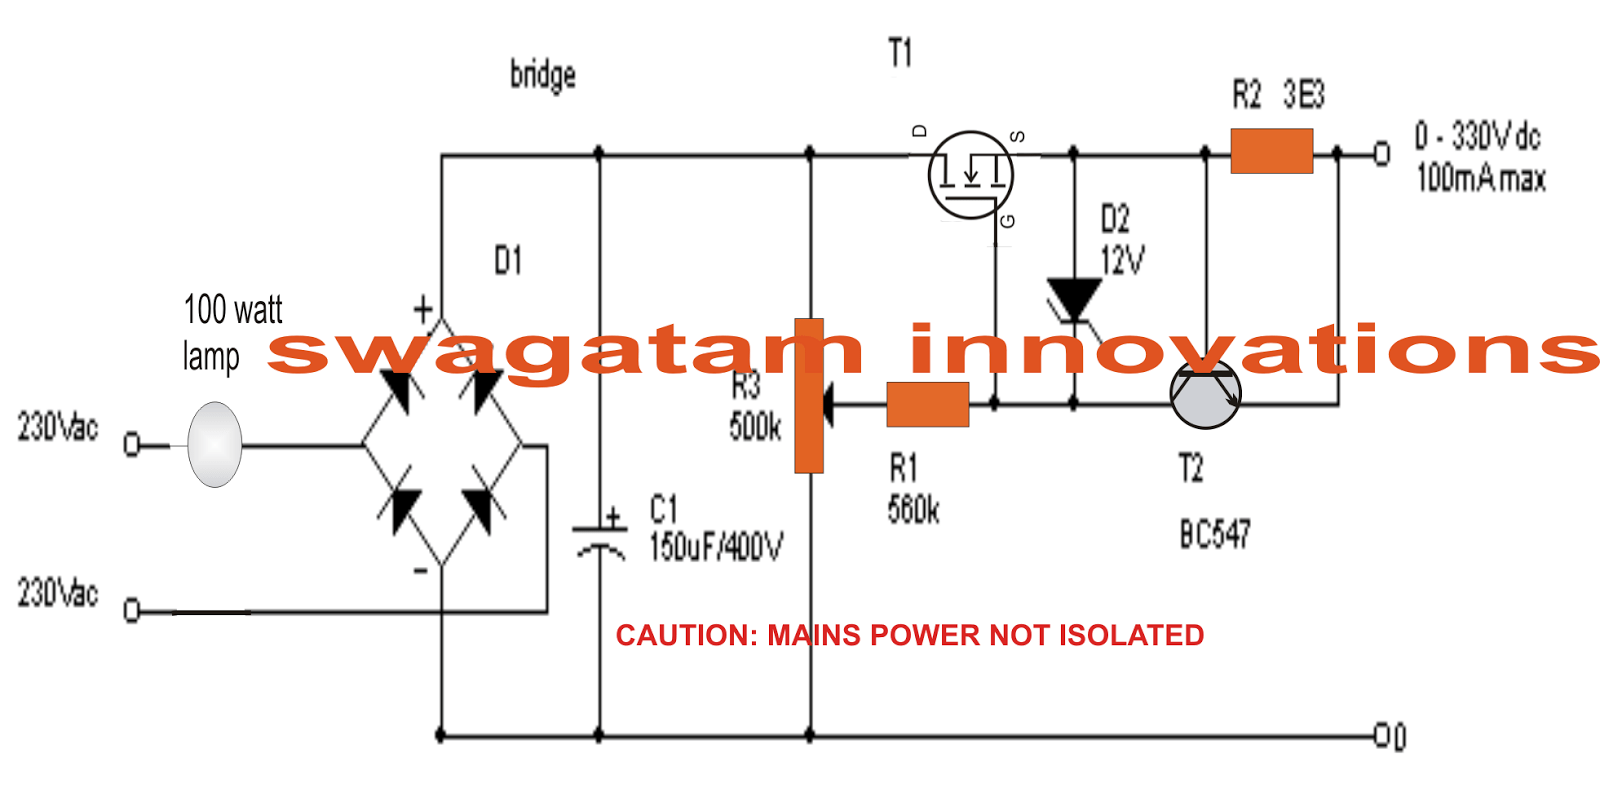 variable transformer wiring diagram basic thermostat safe 0300 vdc supply electrical